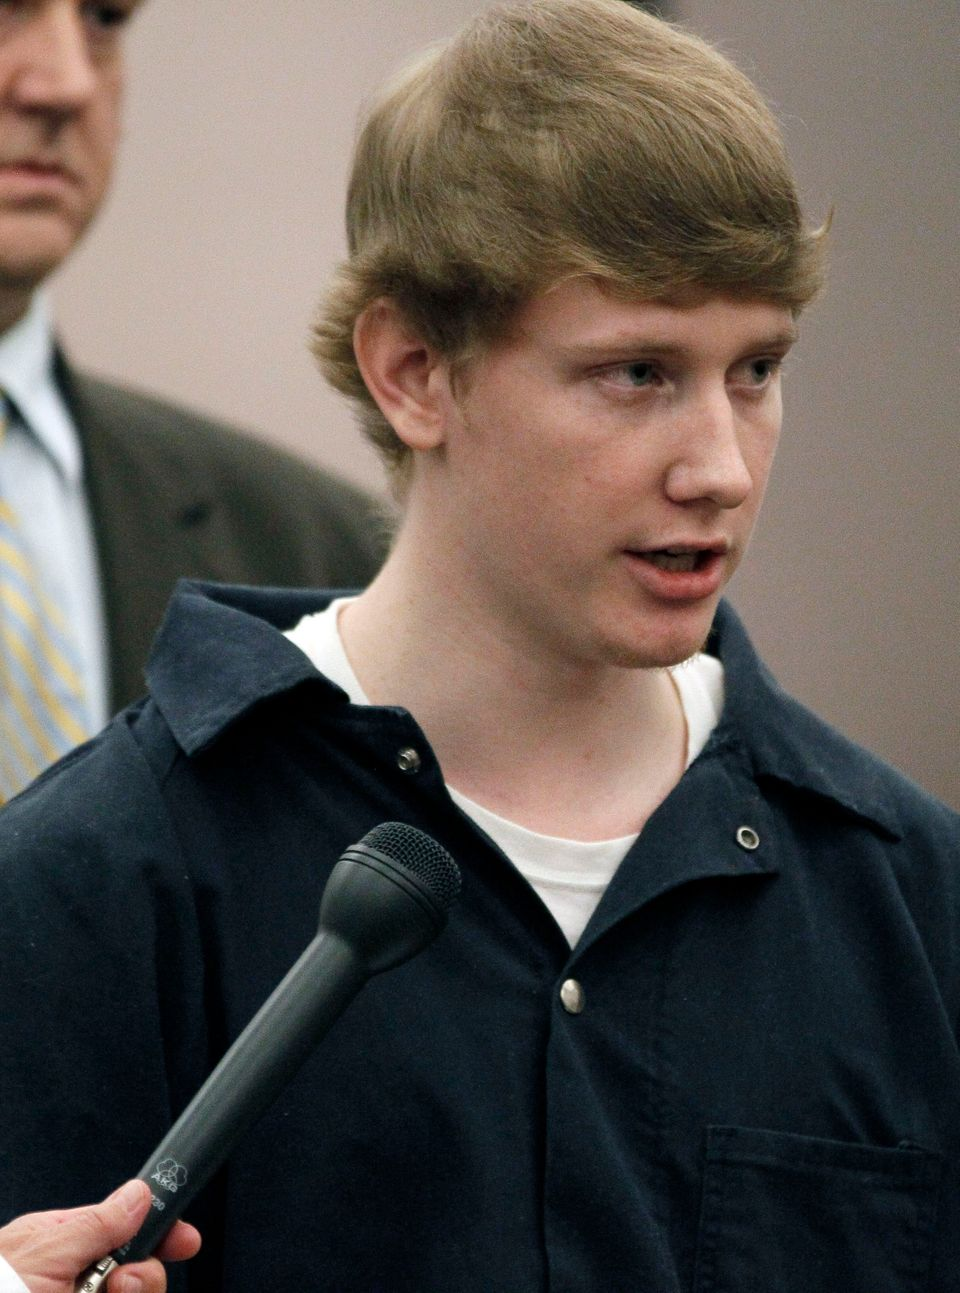 FILE - In this March 21, 2012 file photo, Deryl Dedmon, 19, charged with capital murder in the June 2011 death of 47-year-old